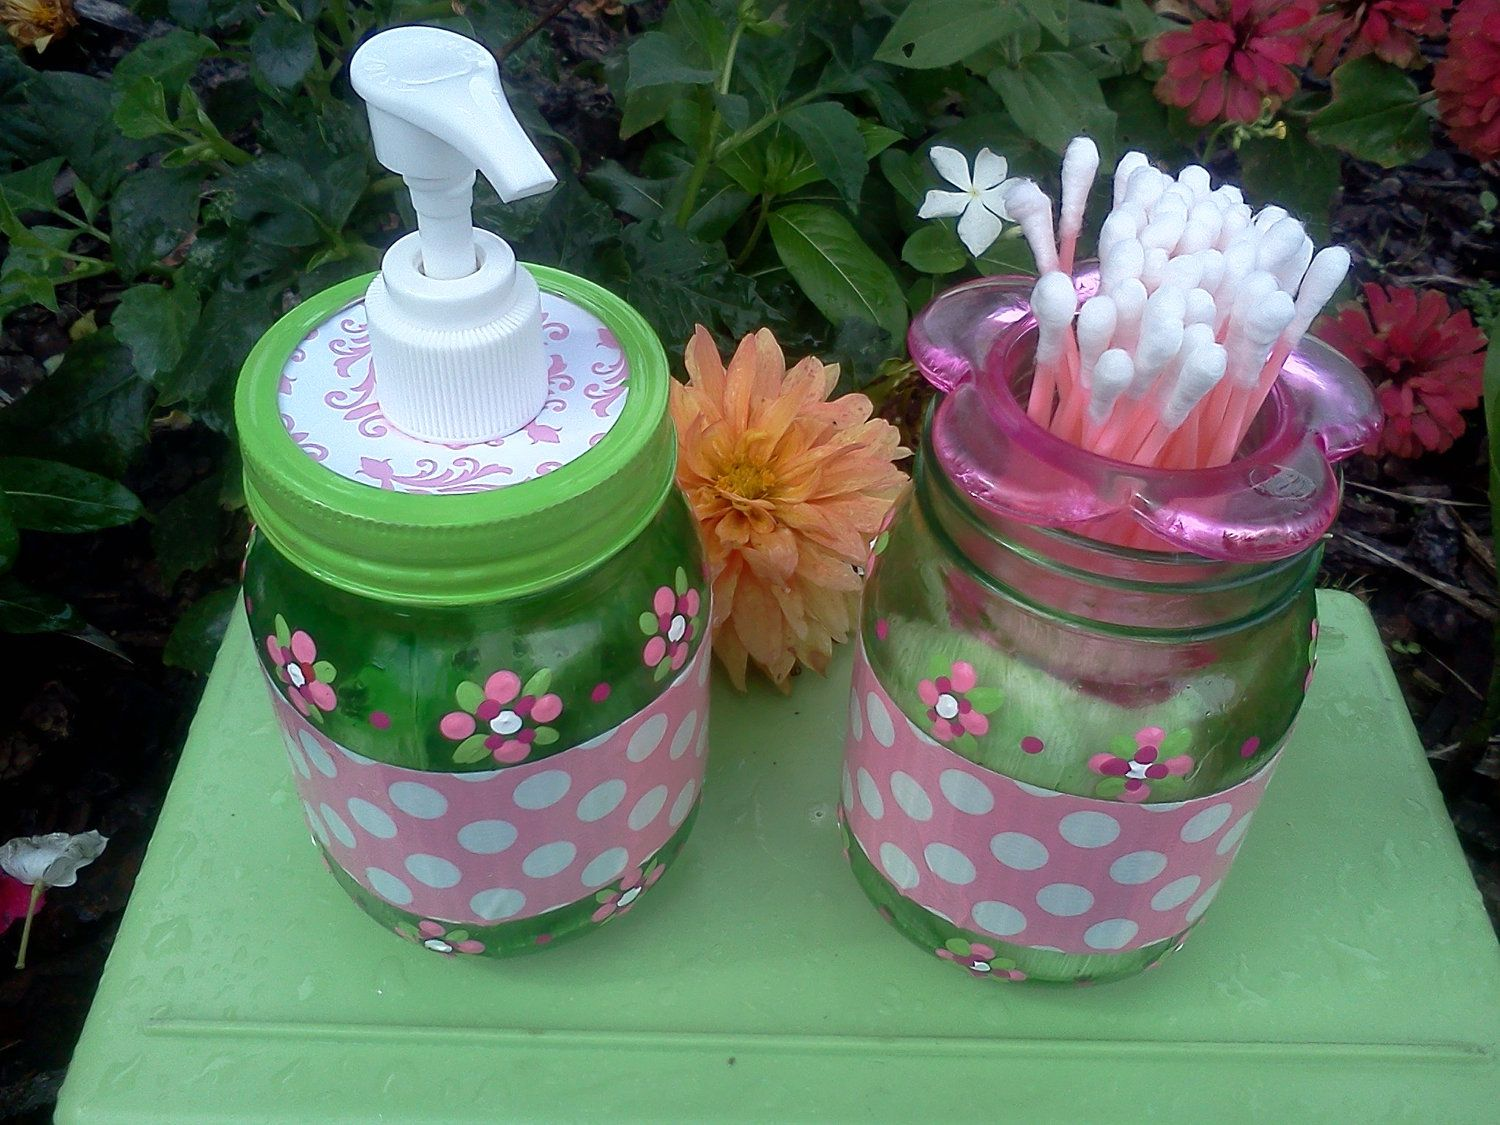 Baby Girl Room Gifts - Hand Sanitizer & Cotton - Q-Tip Jars - Green